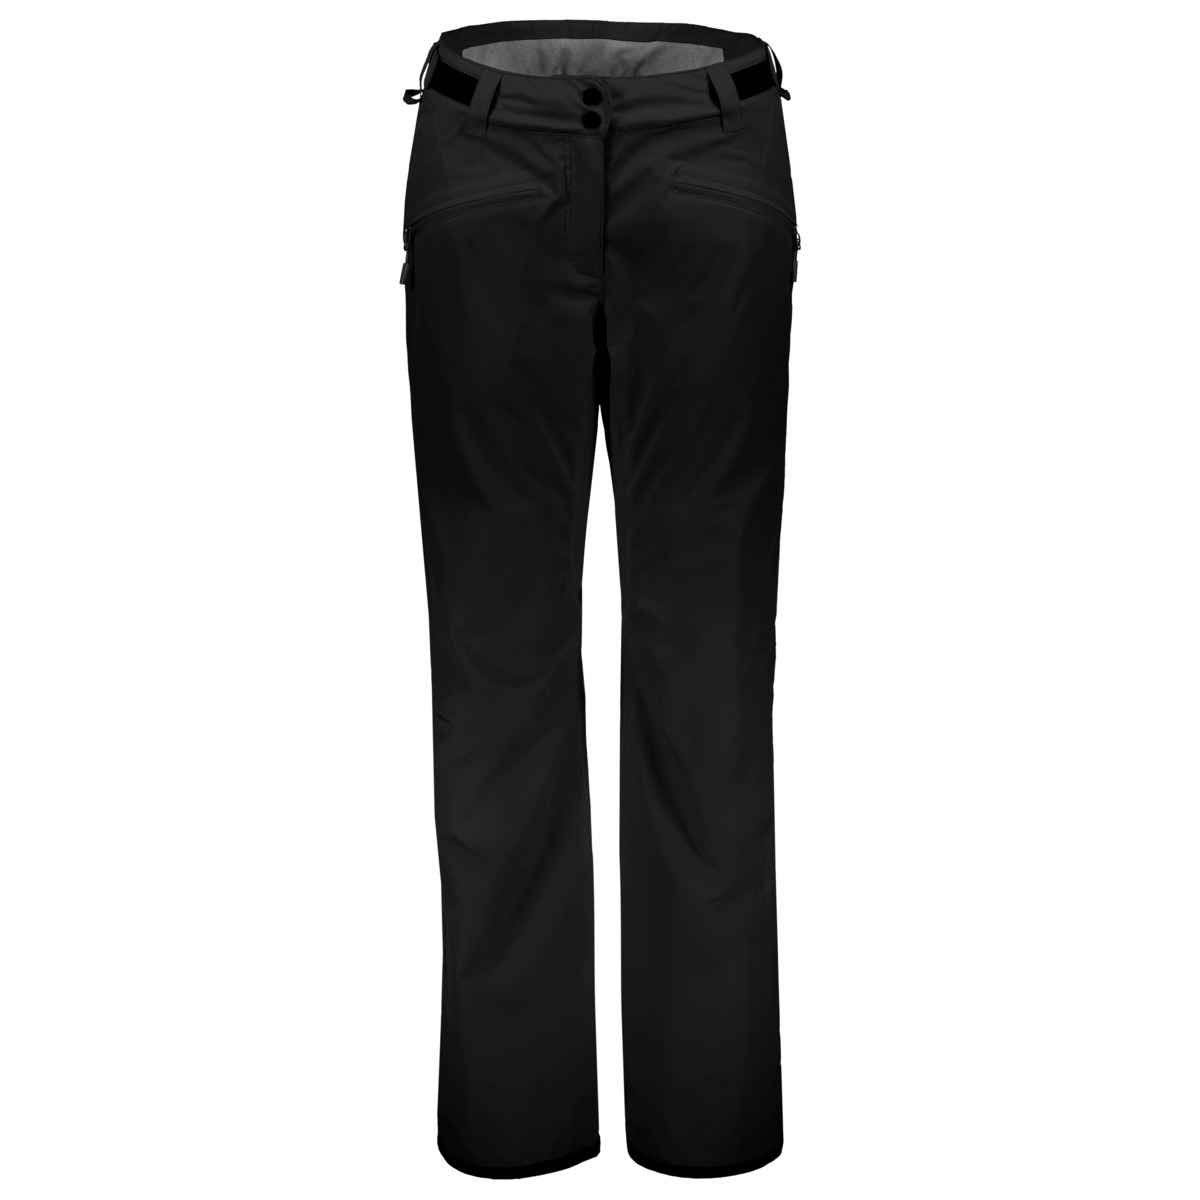 Scott Ultimate Dryo 20 Pant - Women's Black, US S/EU M